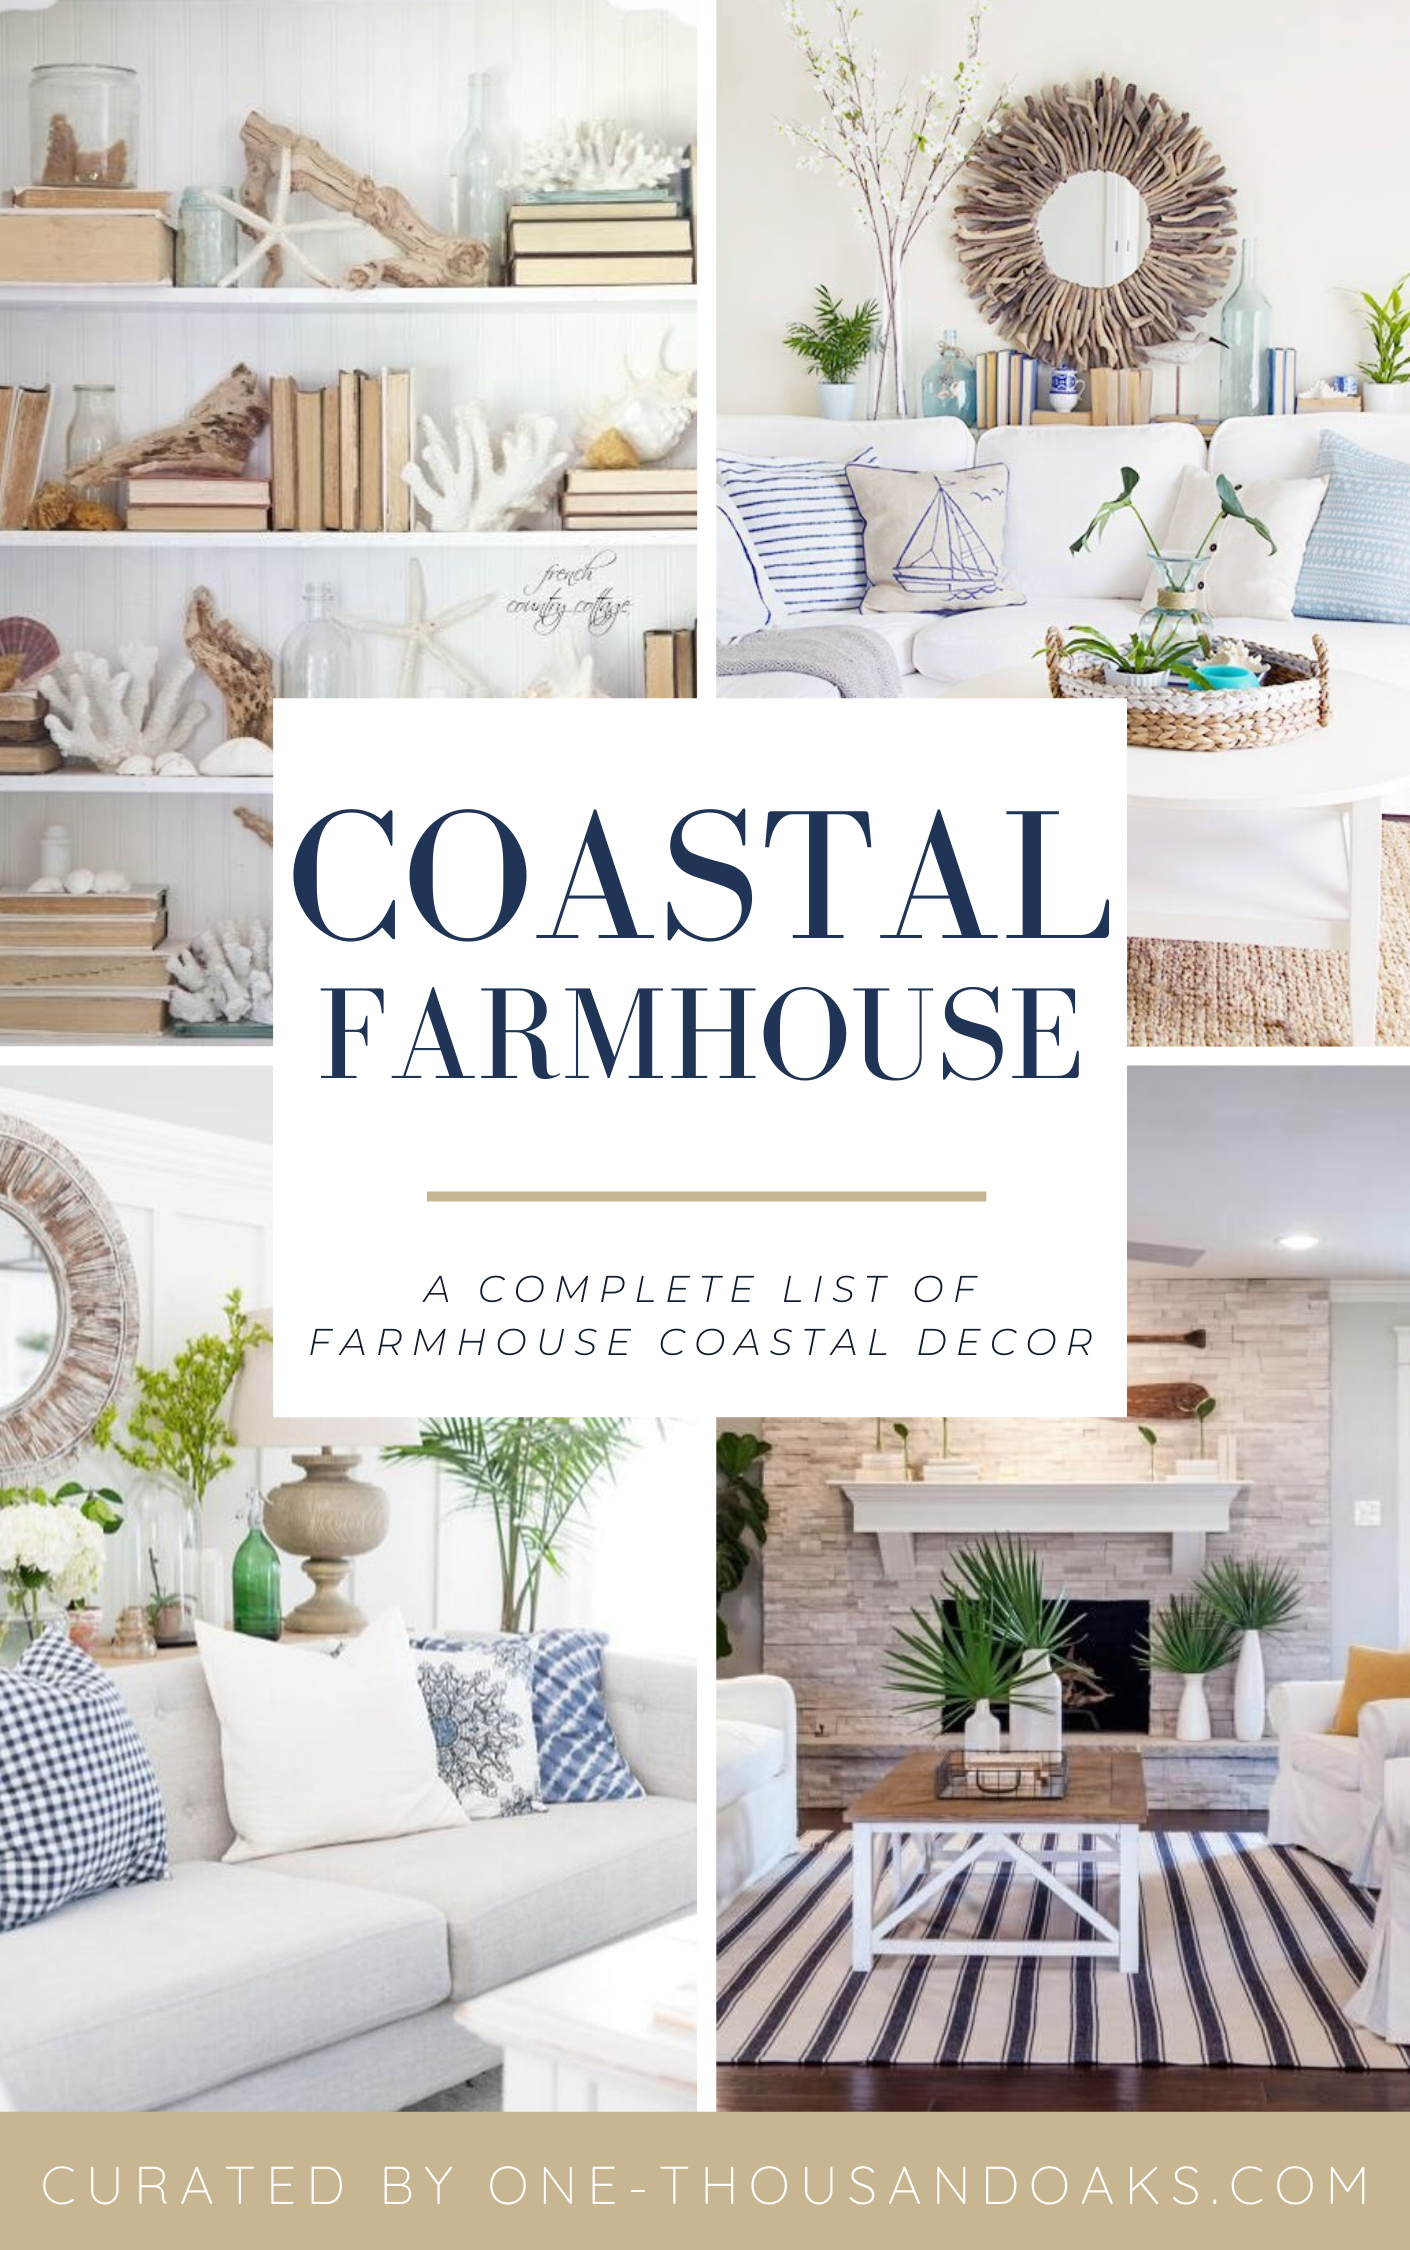 The Best Coastal Farmhouse Decor On Amazon One Thousand Oaks Coastal Farmhouse Decor Beach House Living Room Farmhouse Decor Living Room